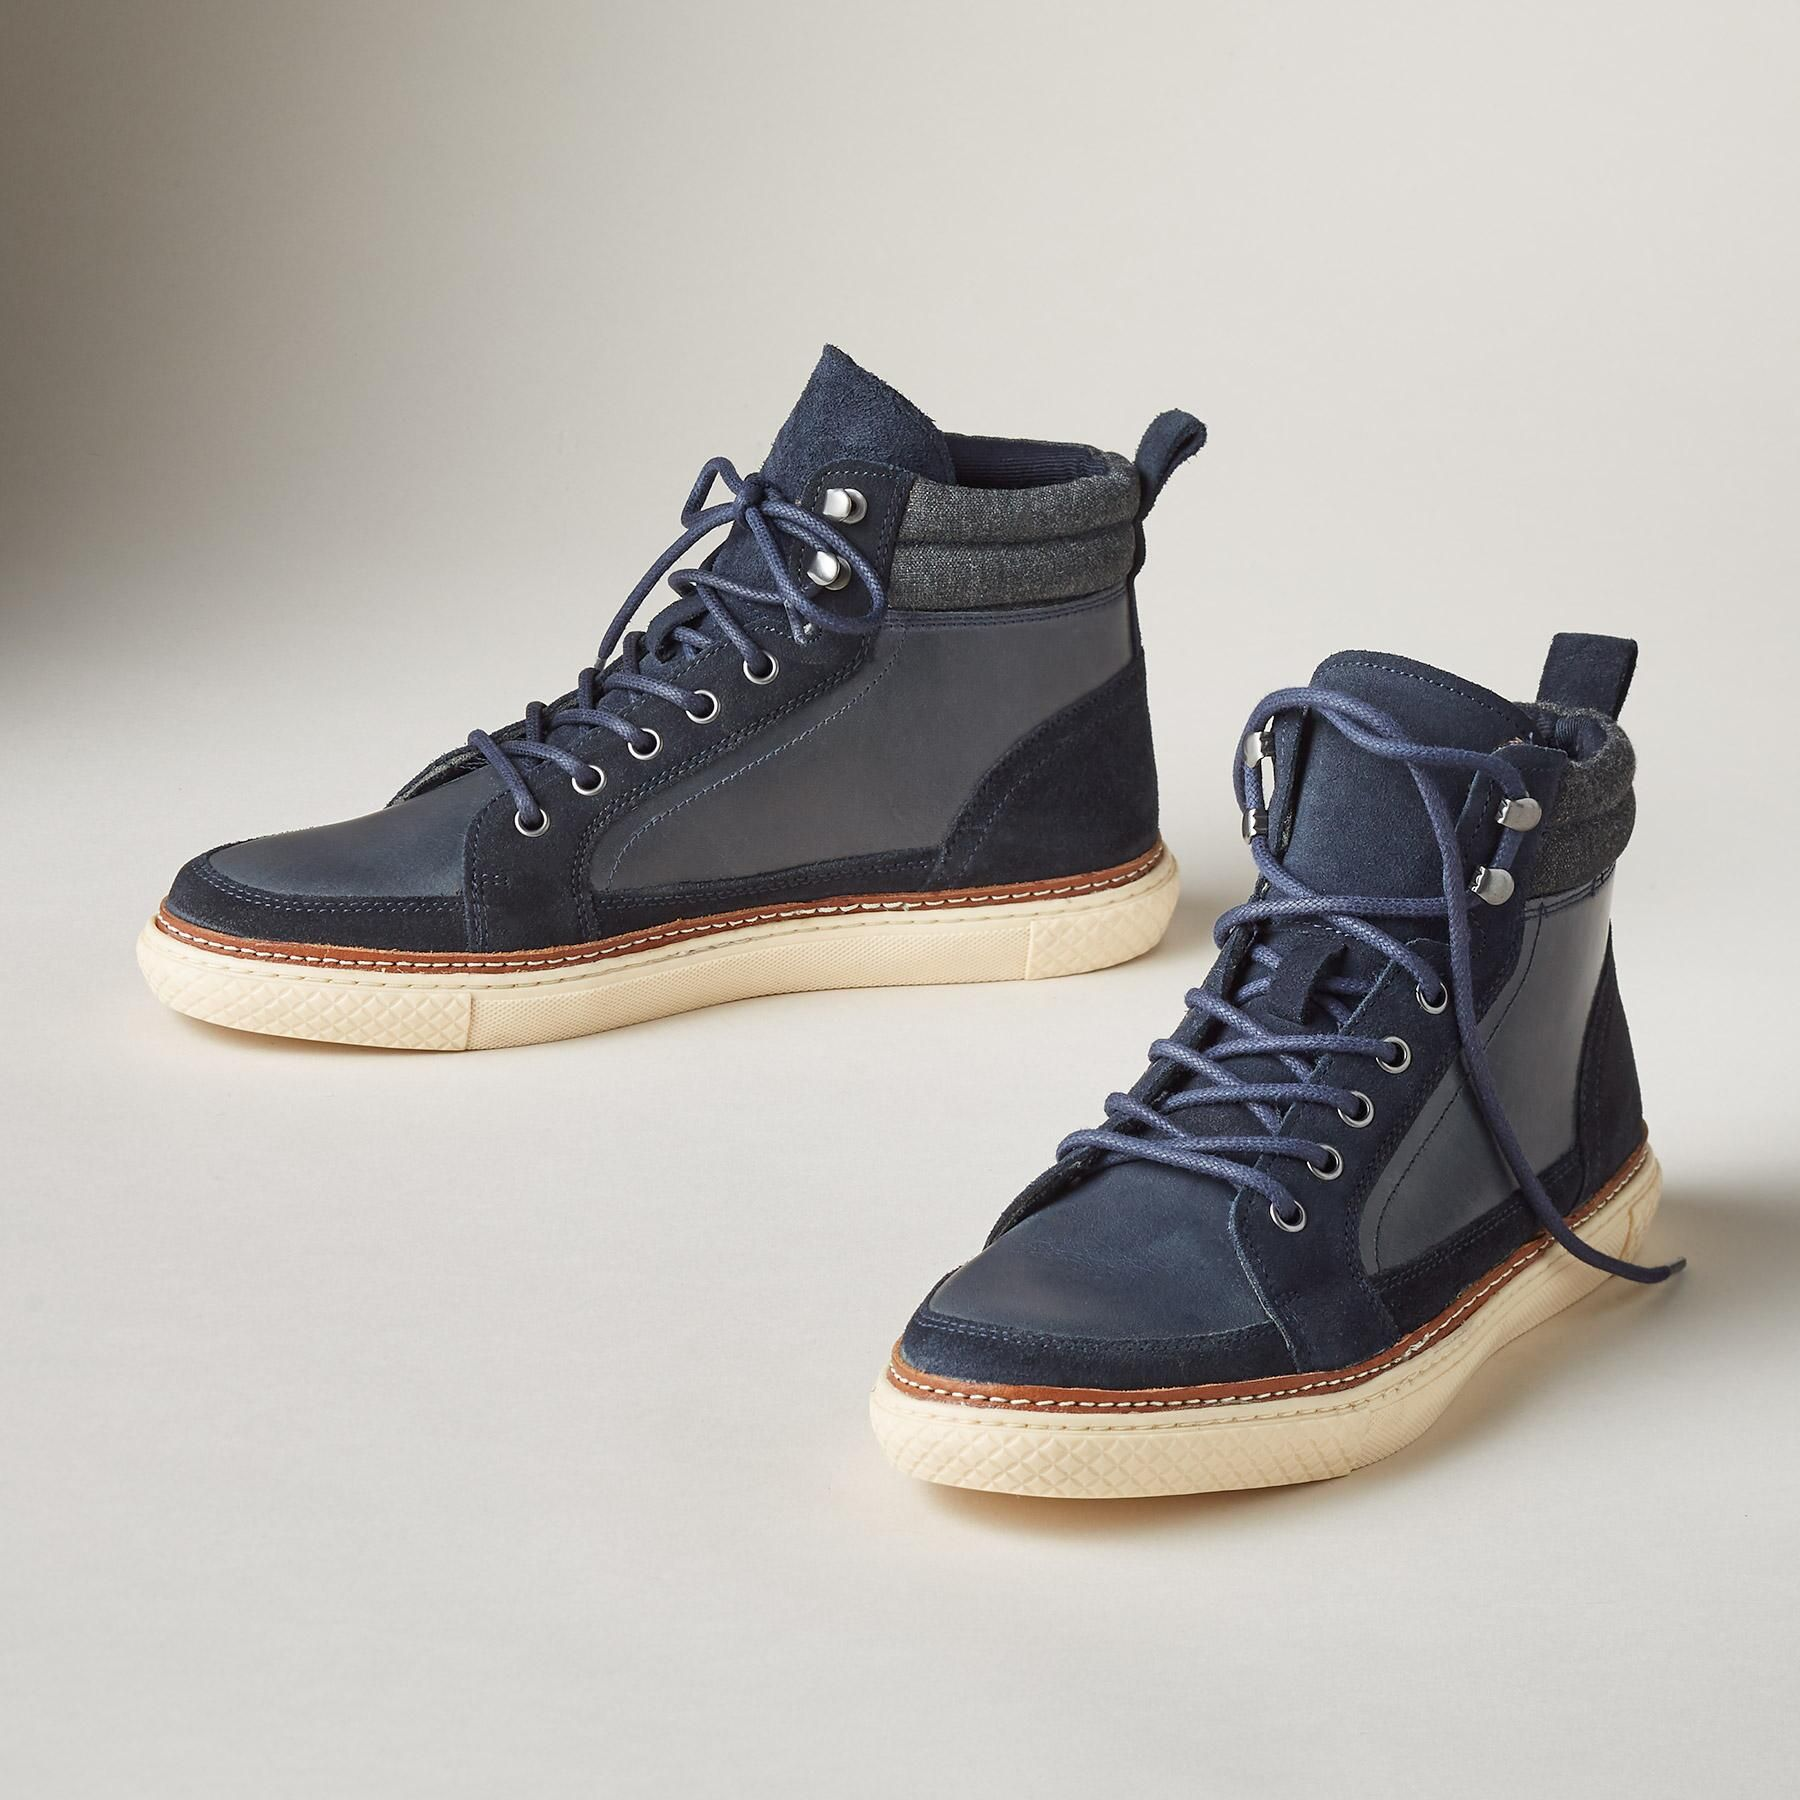 8ea22475f09c Elan Polo Graham Sneakers Picked from SUNDANCE  Leather